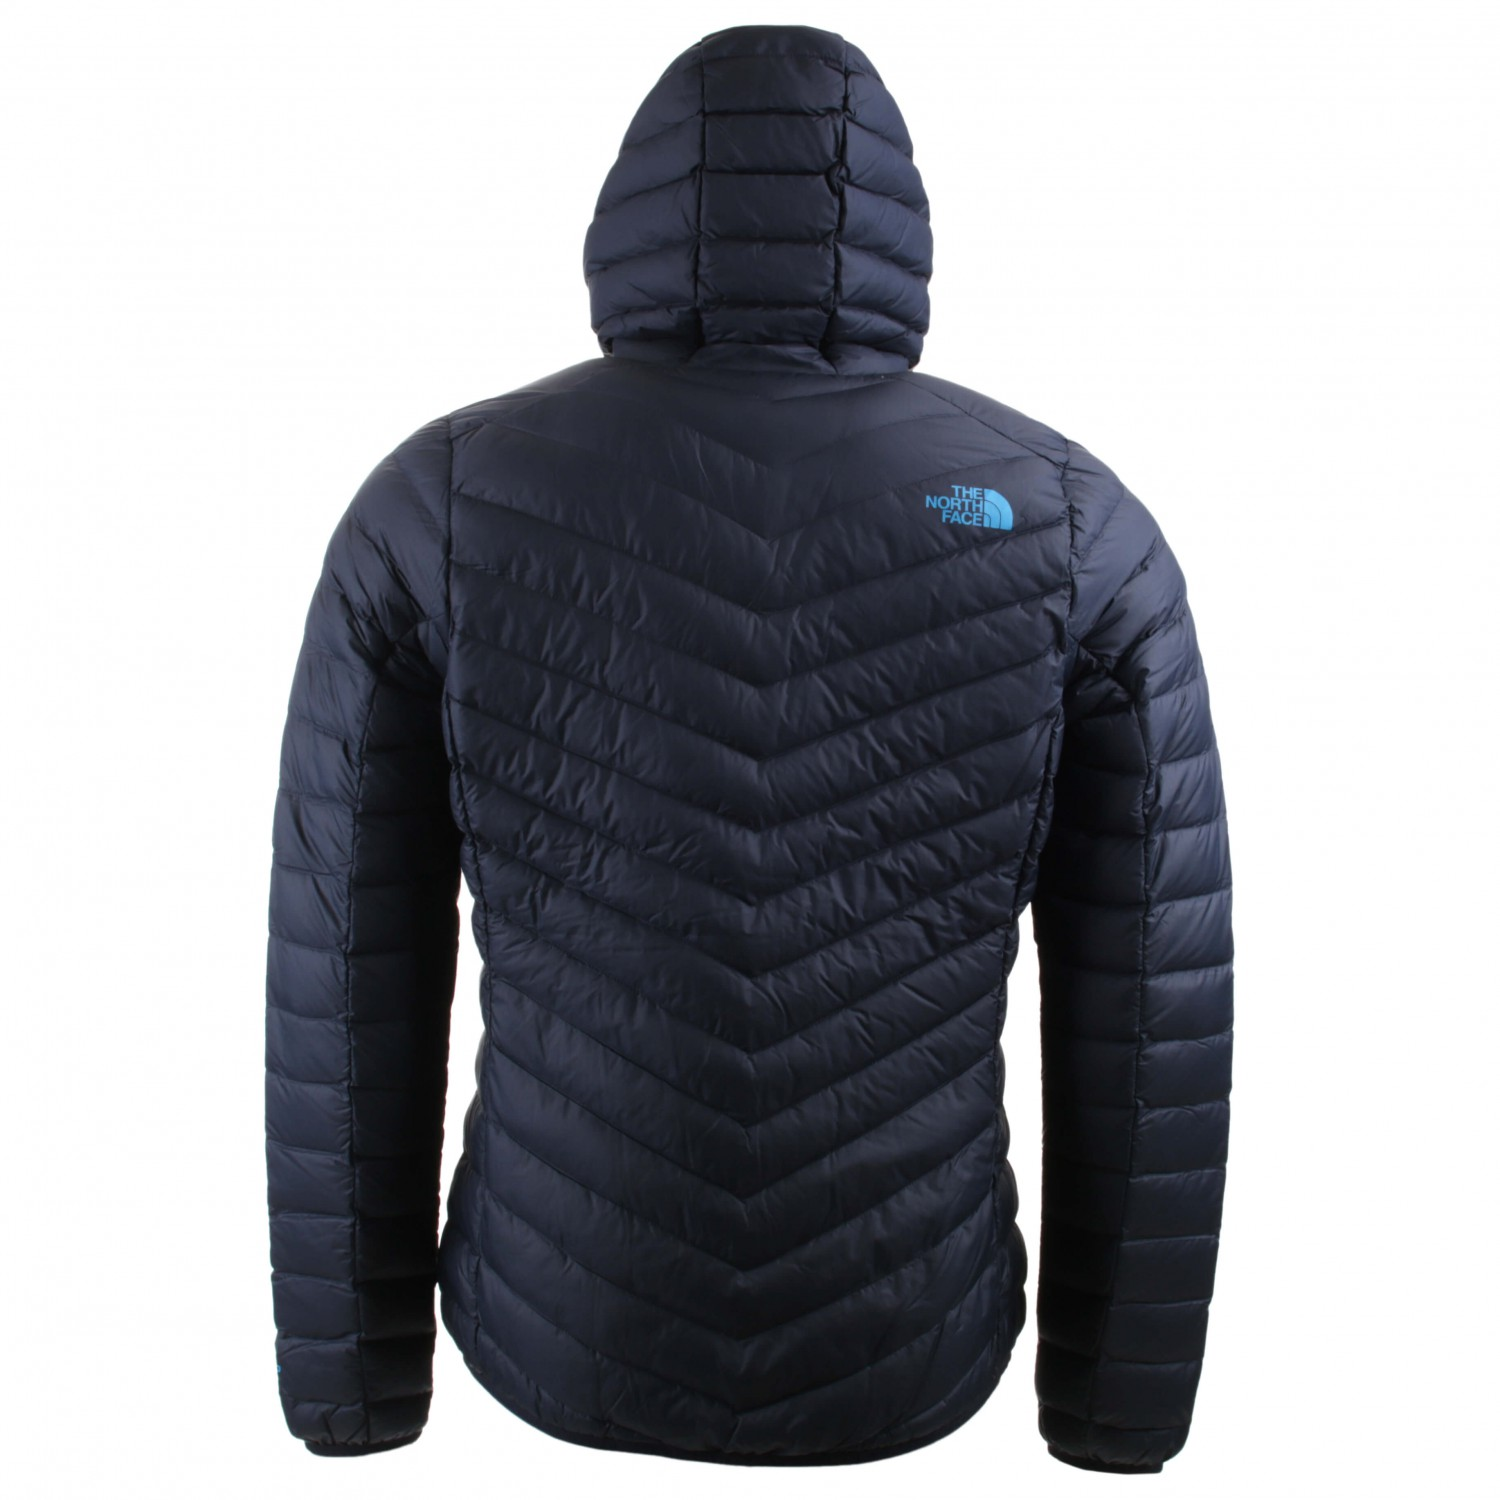 doudoune homme north face,doudoune capuche keep it pure homme the ... 80b12f088f6